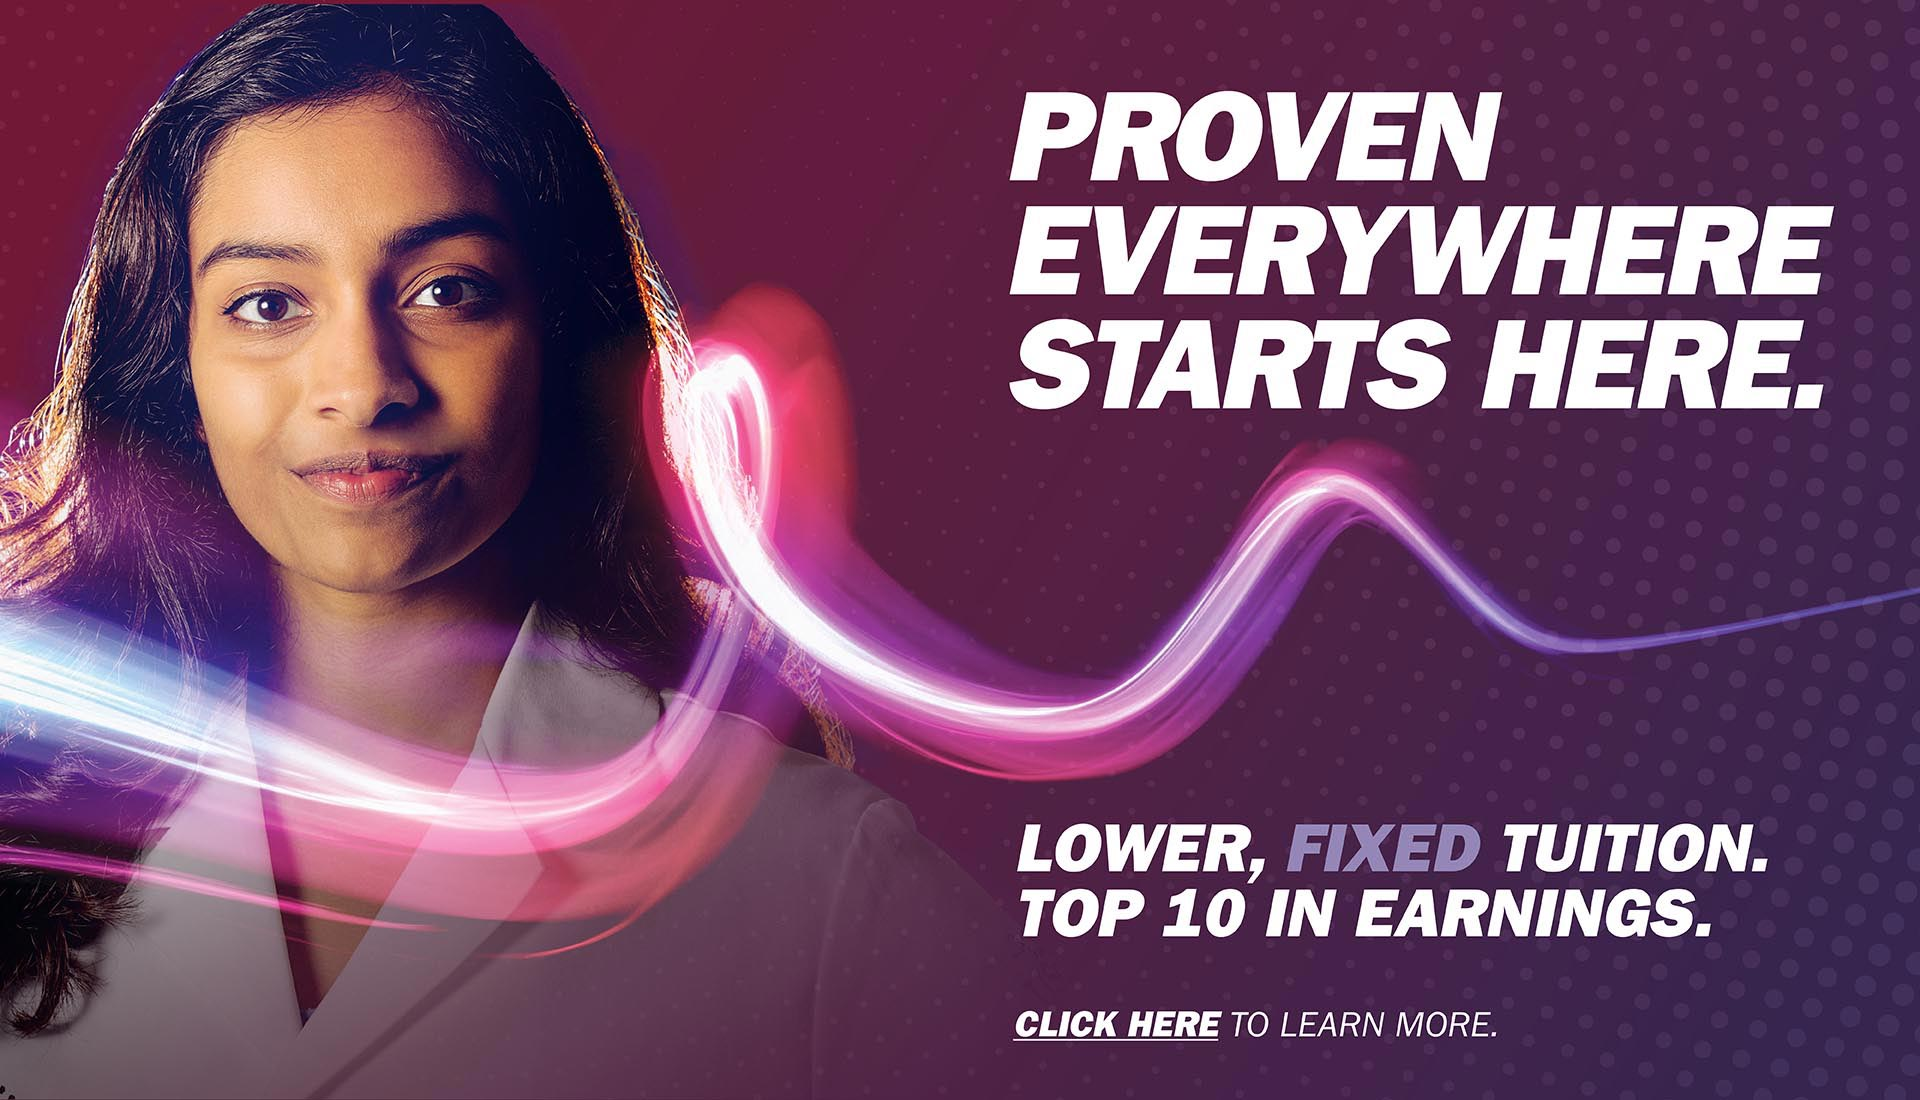 Proven Everywhere Starts Here. Lower, Fixed Tuition. Top 10 In Earnings. Click Here to Learn More.